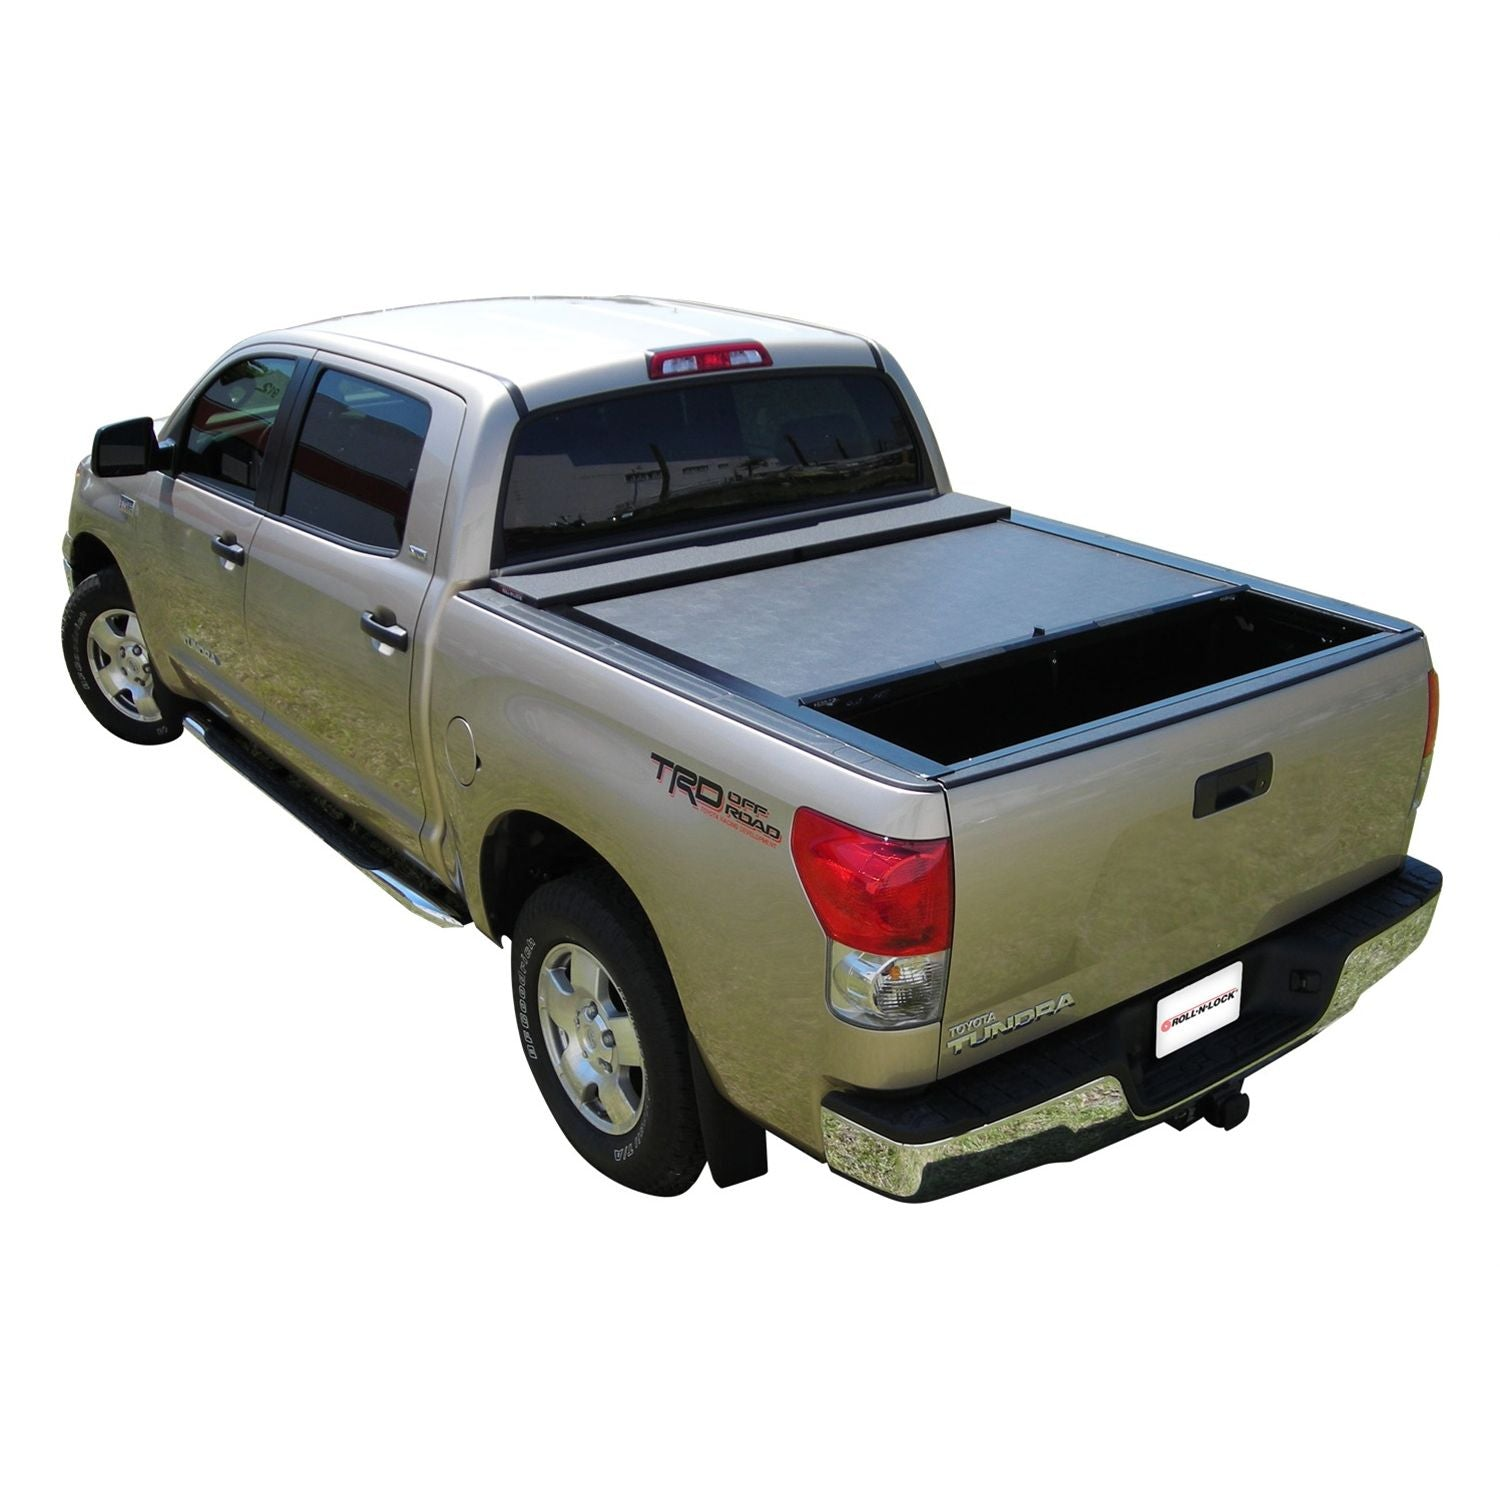 Roll-N-Lock LG570M Locking Retractable M-Series Truck Bed Tonneau Cover for 2007-2020 Toyota Tundra CrewMax | Fits 5.6 Ft. Bed